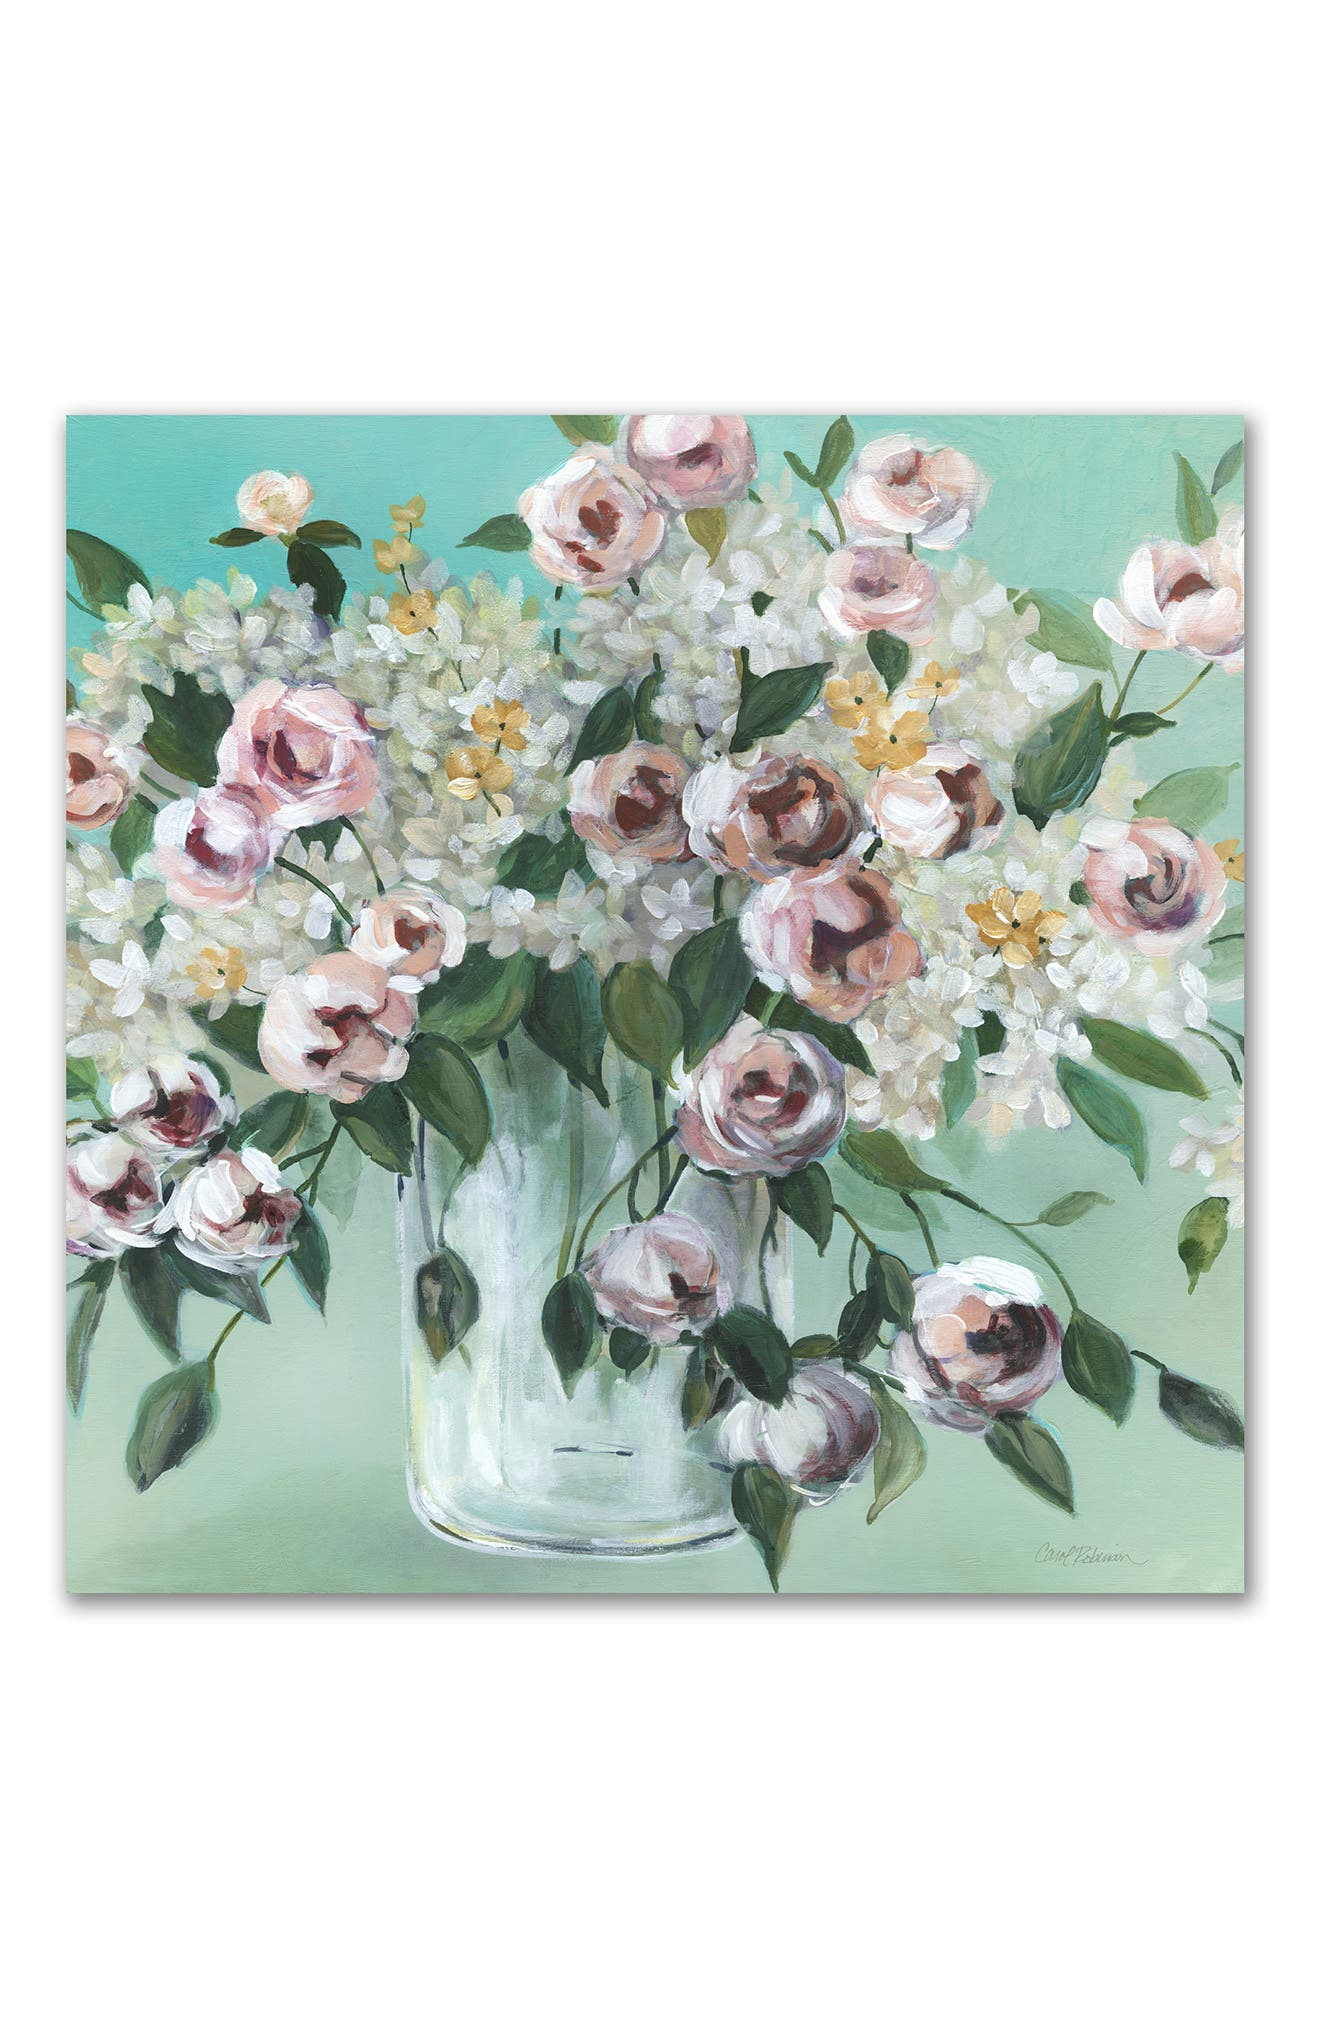 Courtside Market Vintage Blooms Gallery-wrapped Canvas Wall Art In Multi Color